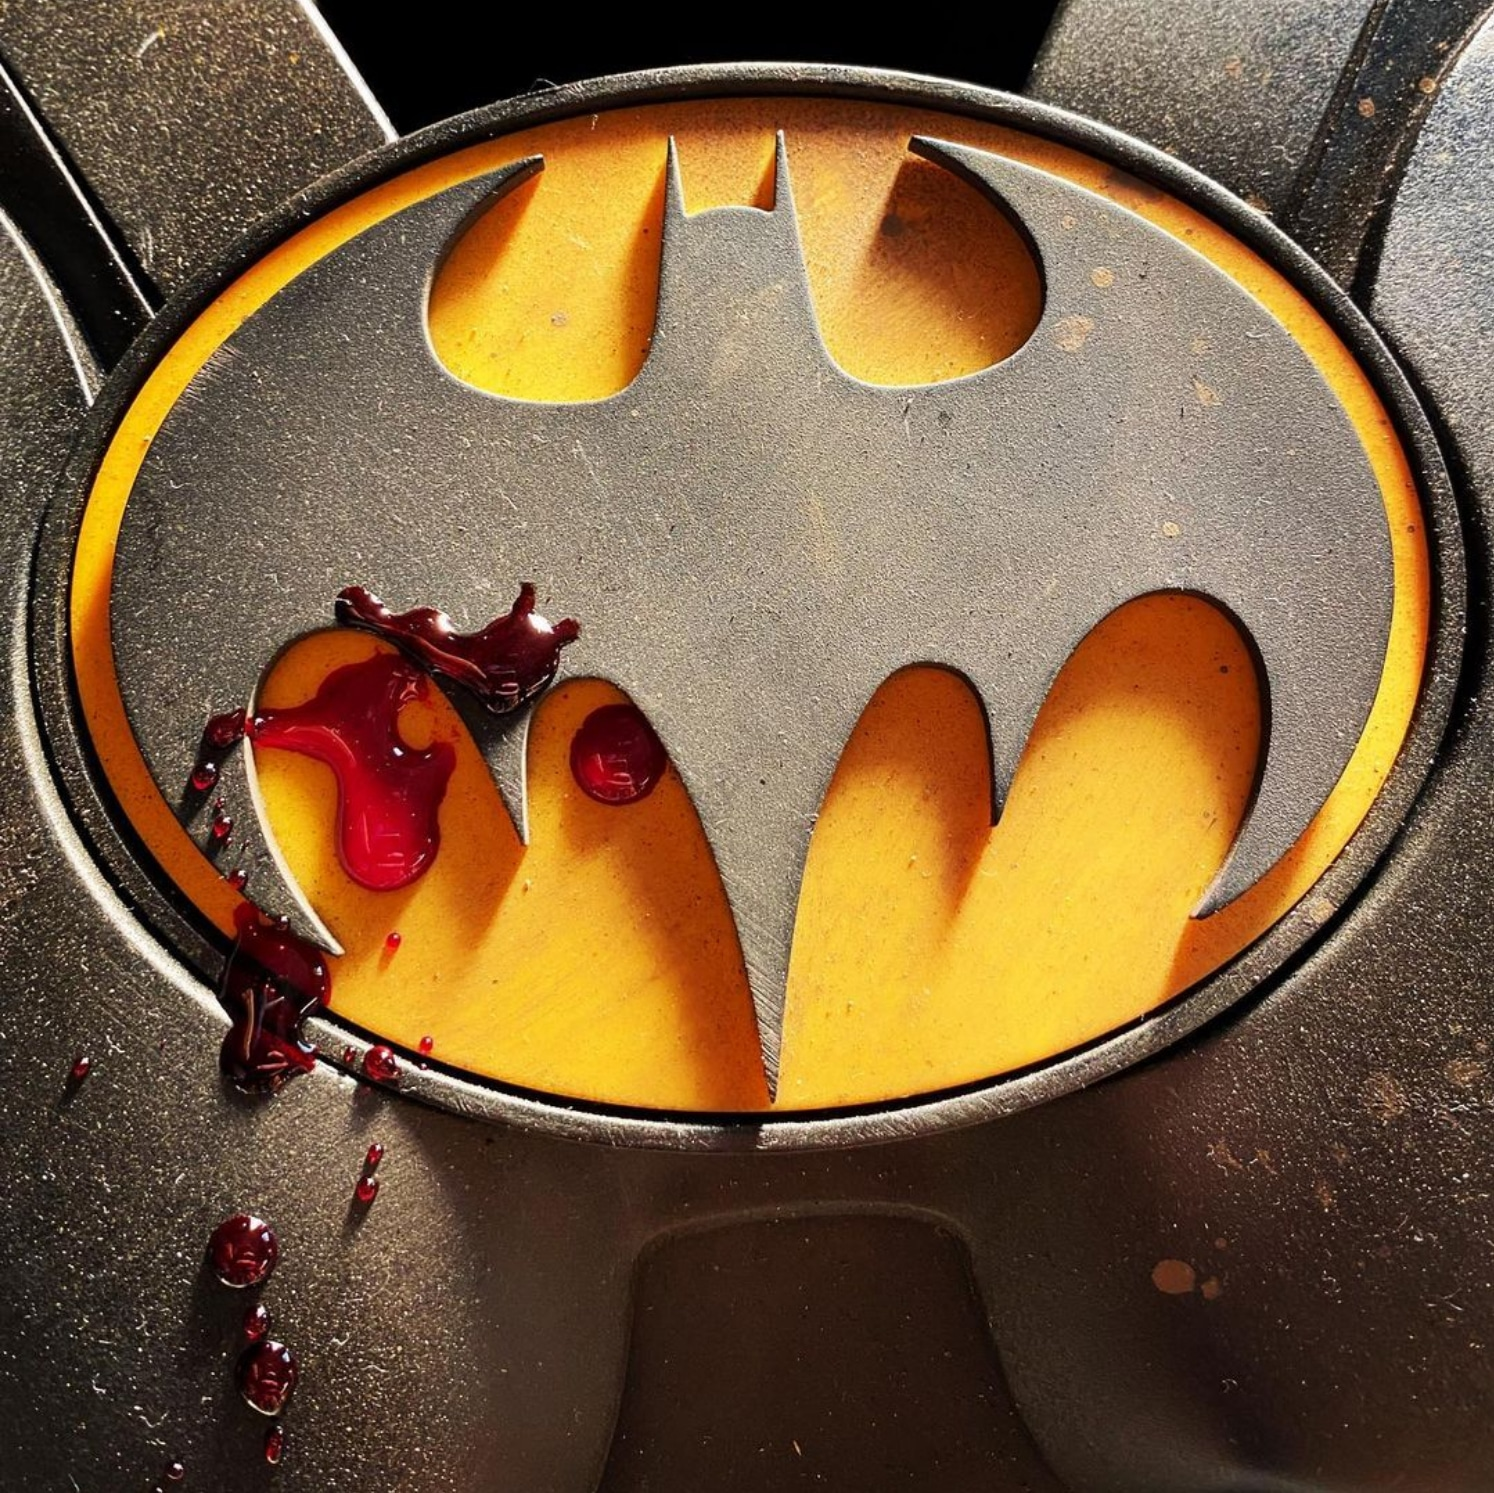 Blood and the bat symbol: The Michael Keaton Batman Batsuit gets bloody in this teaser image for The Flash shared by director Andy Muschietti.